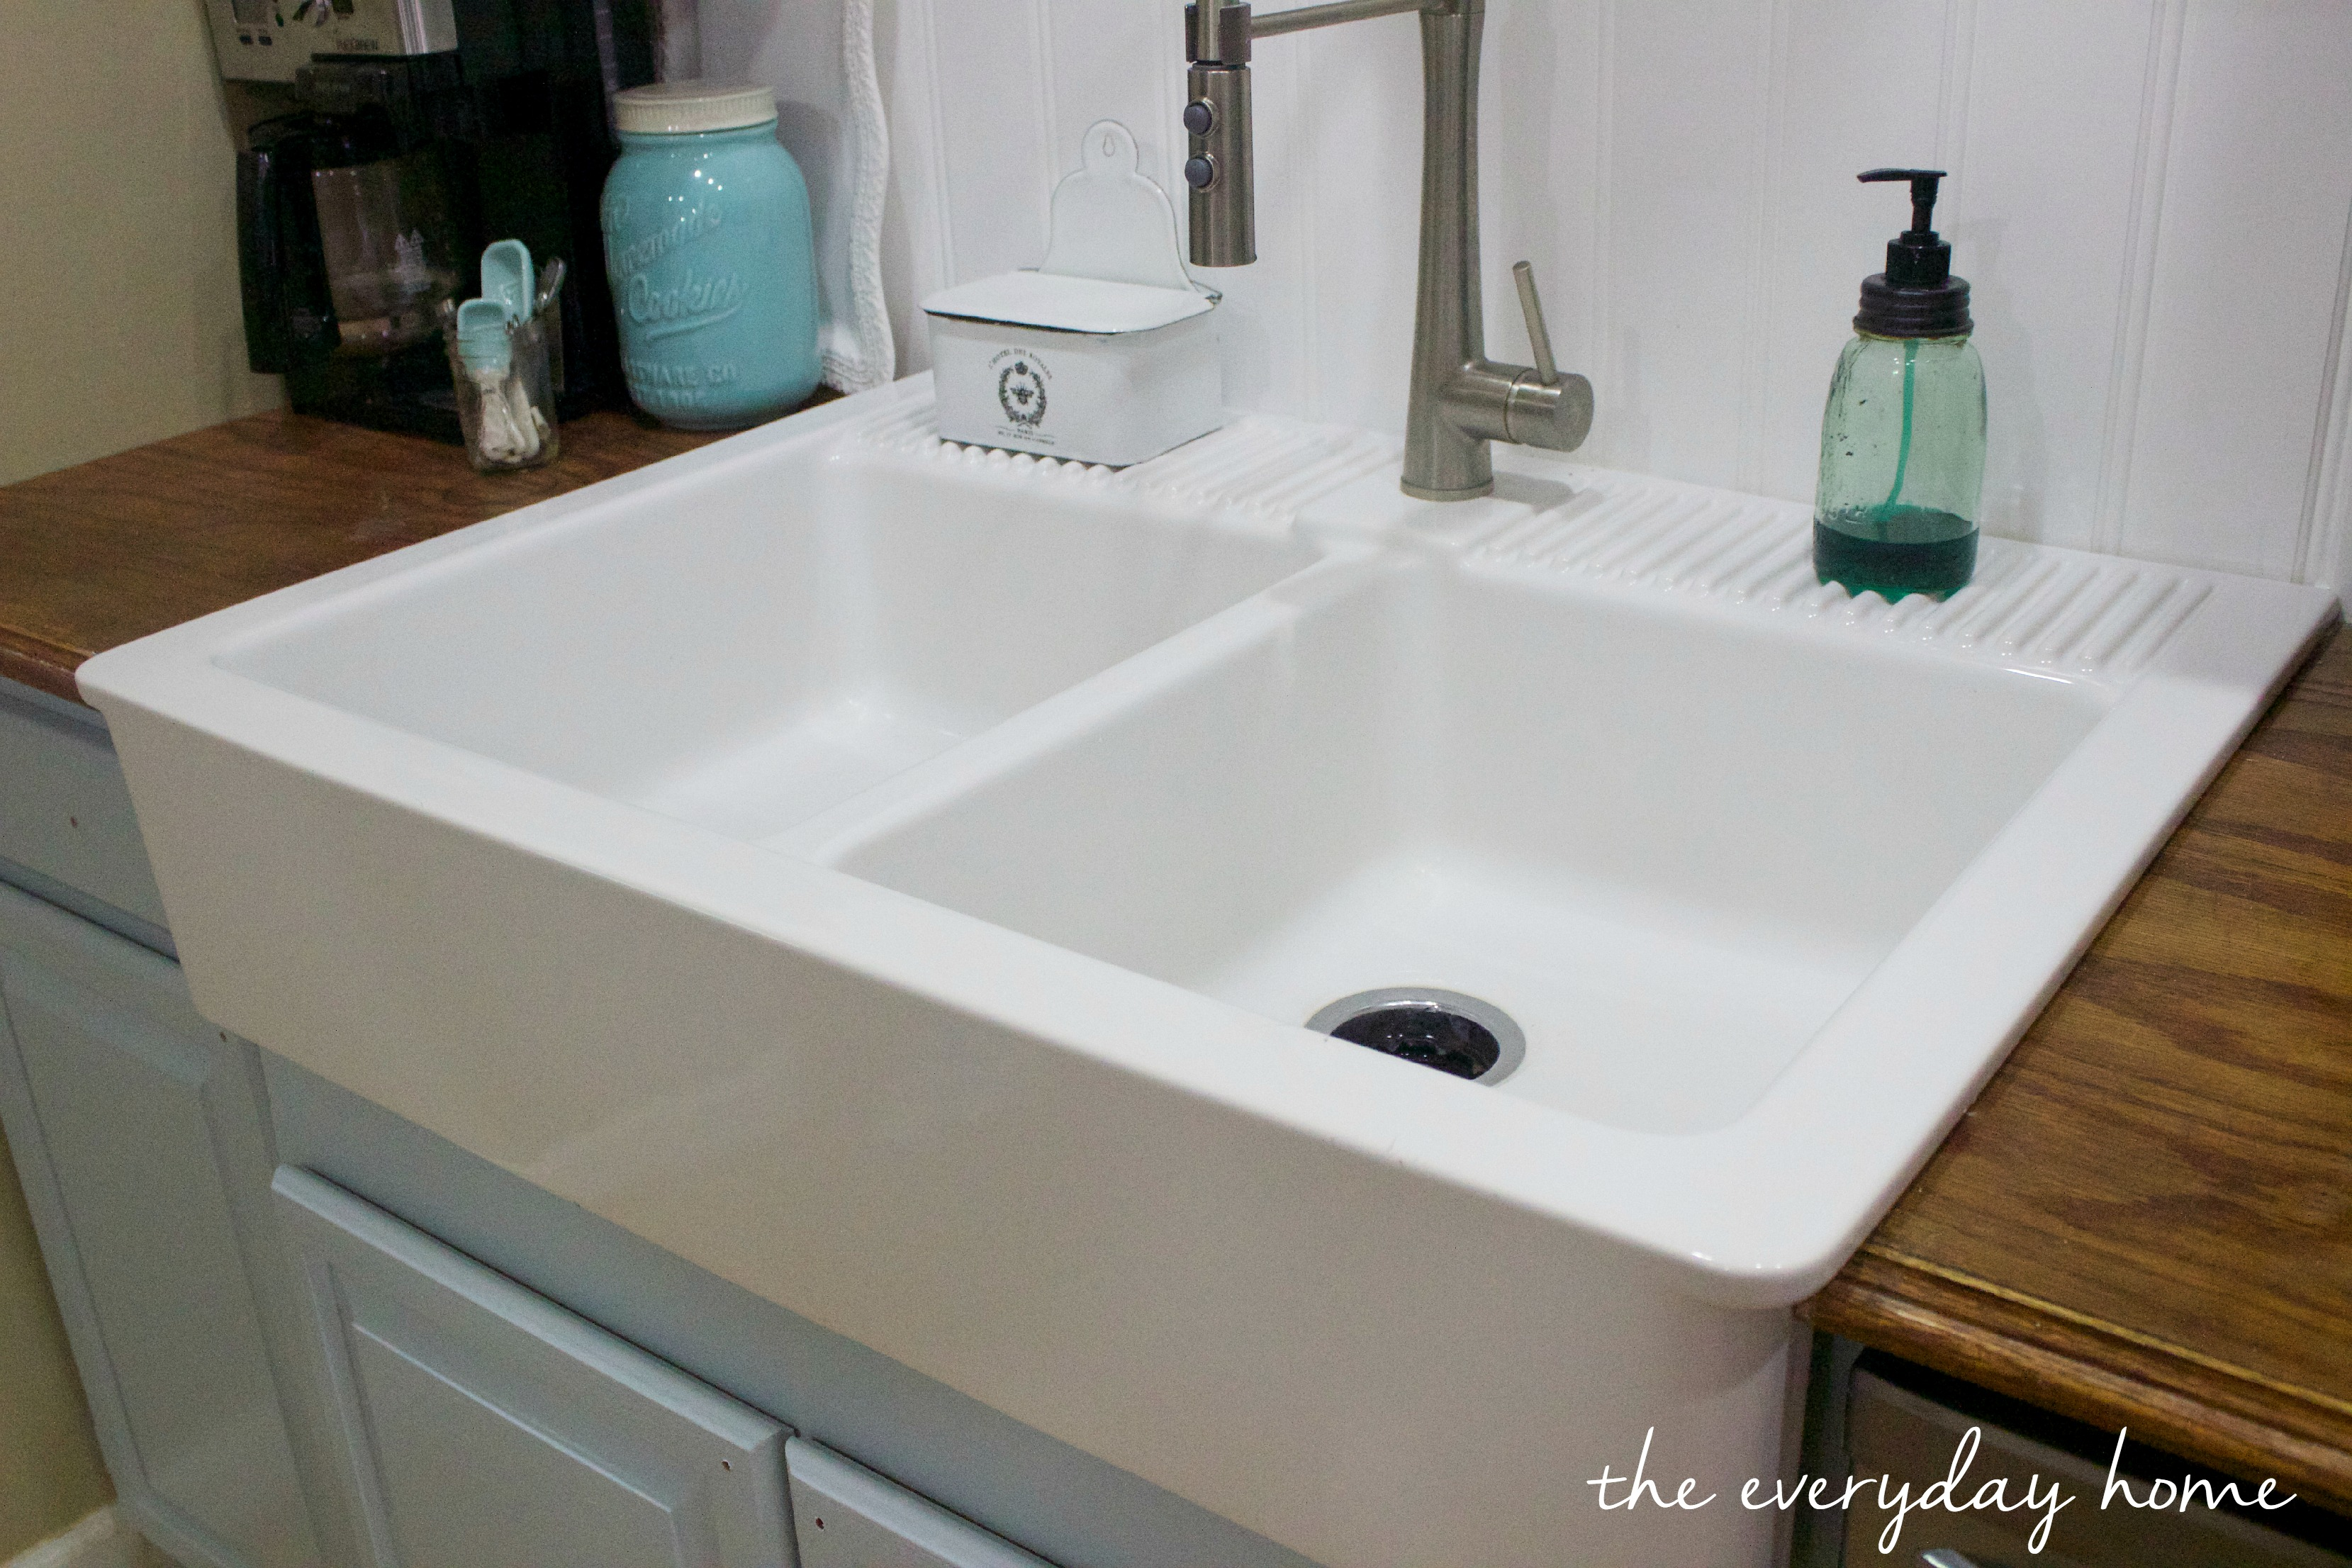 Ikea Farmhouse Sink : IKEA-Farmhouse-Sink The Everyday Home www.evevrydayhomeblog.com (2)